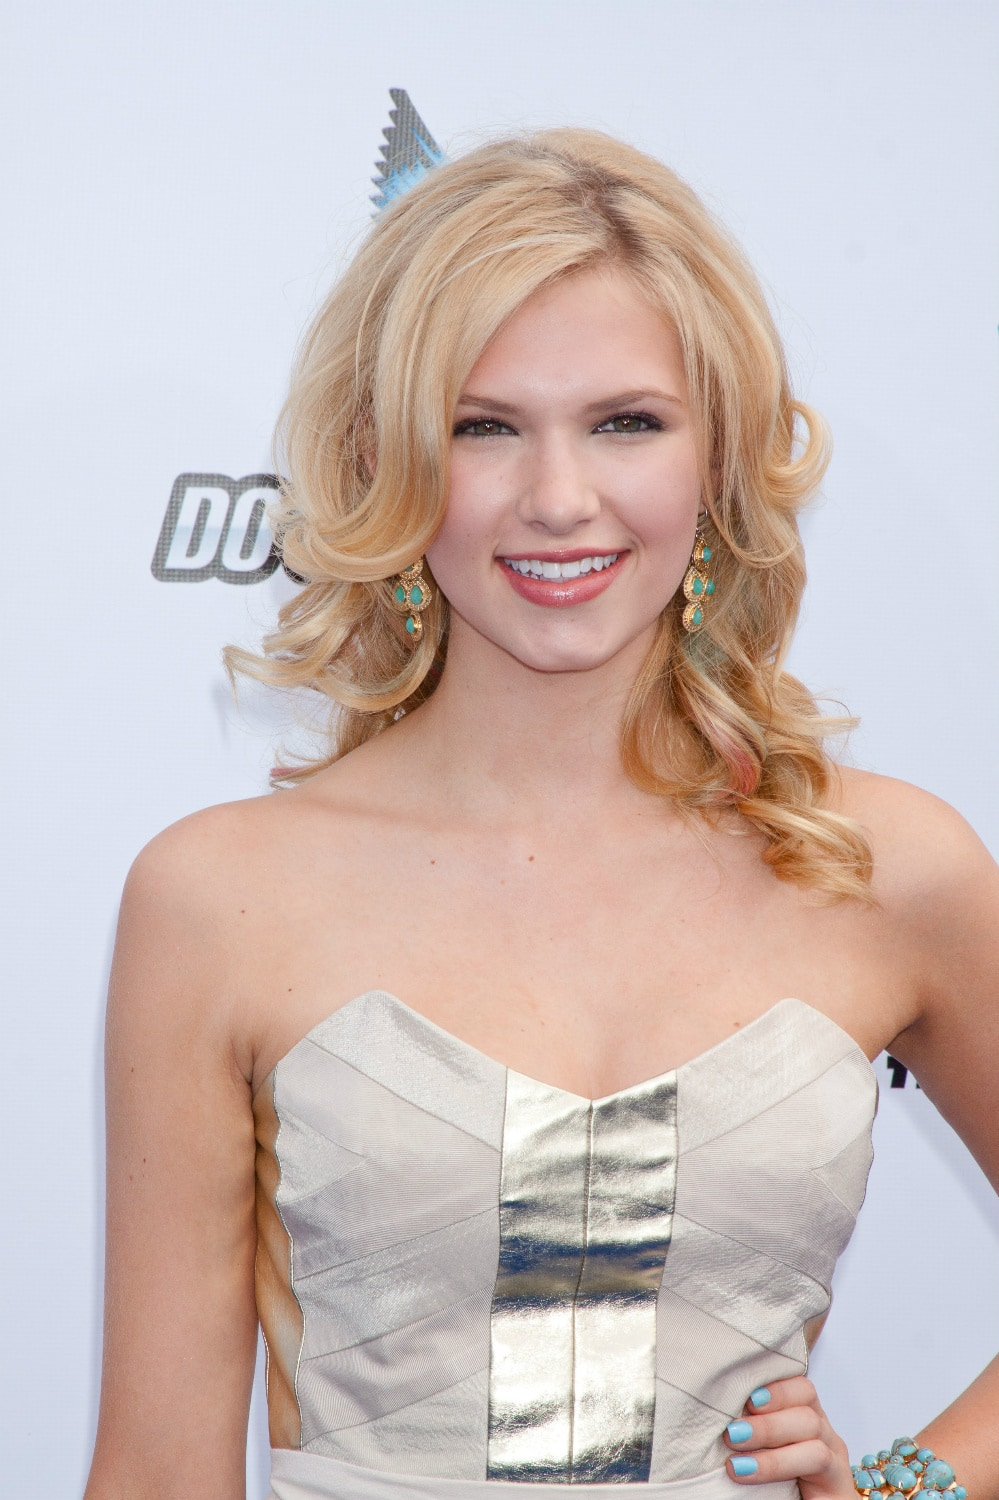 Claudia Lee To Star In Skateboarding Film 'Paved New World'